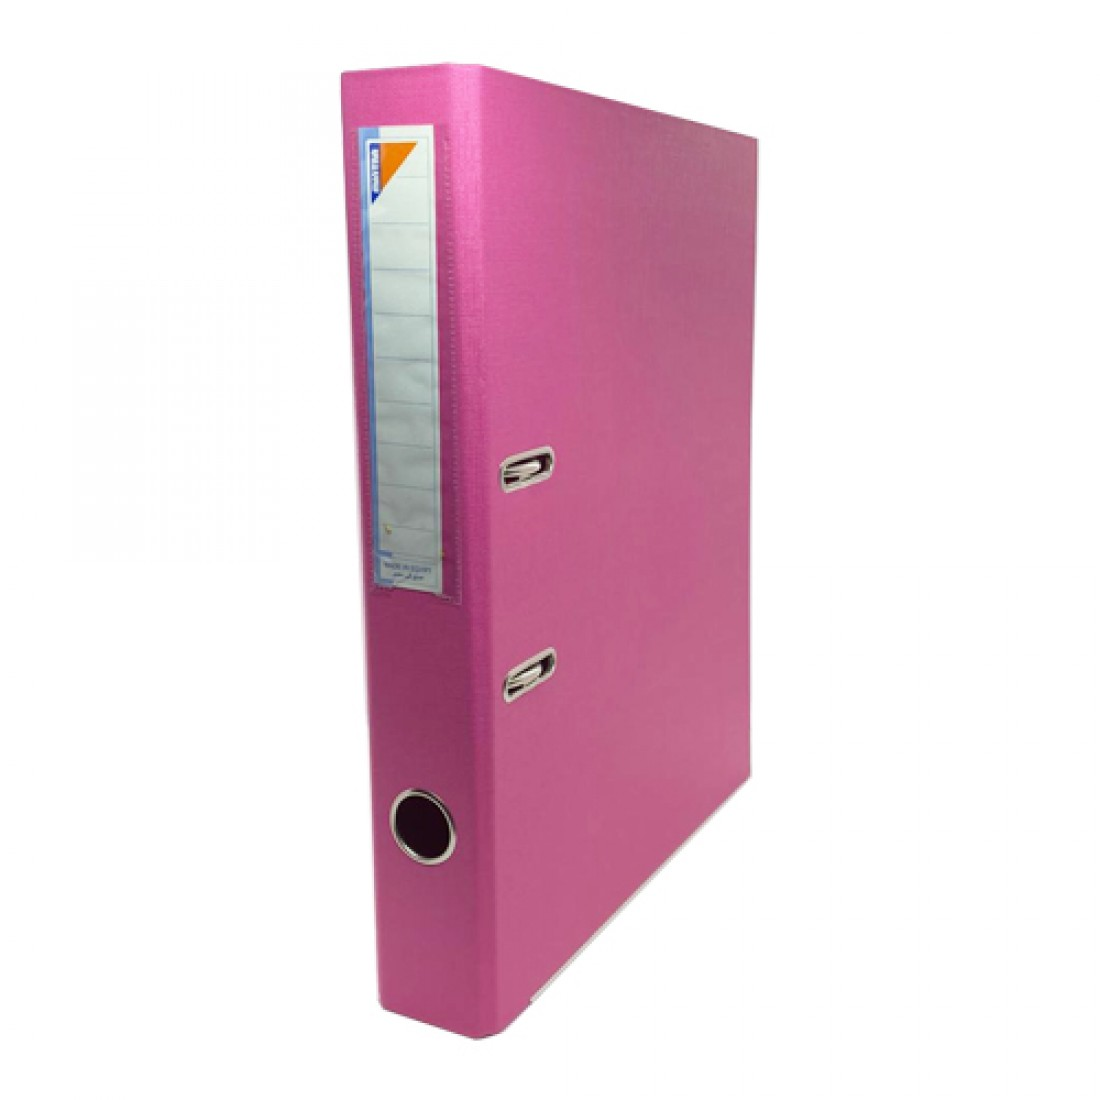 Box File, MINTRA, Lever Arch File, 2-Ring Binder,Cardboard , 50mm, A4, Pink